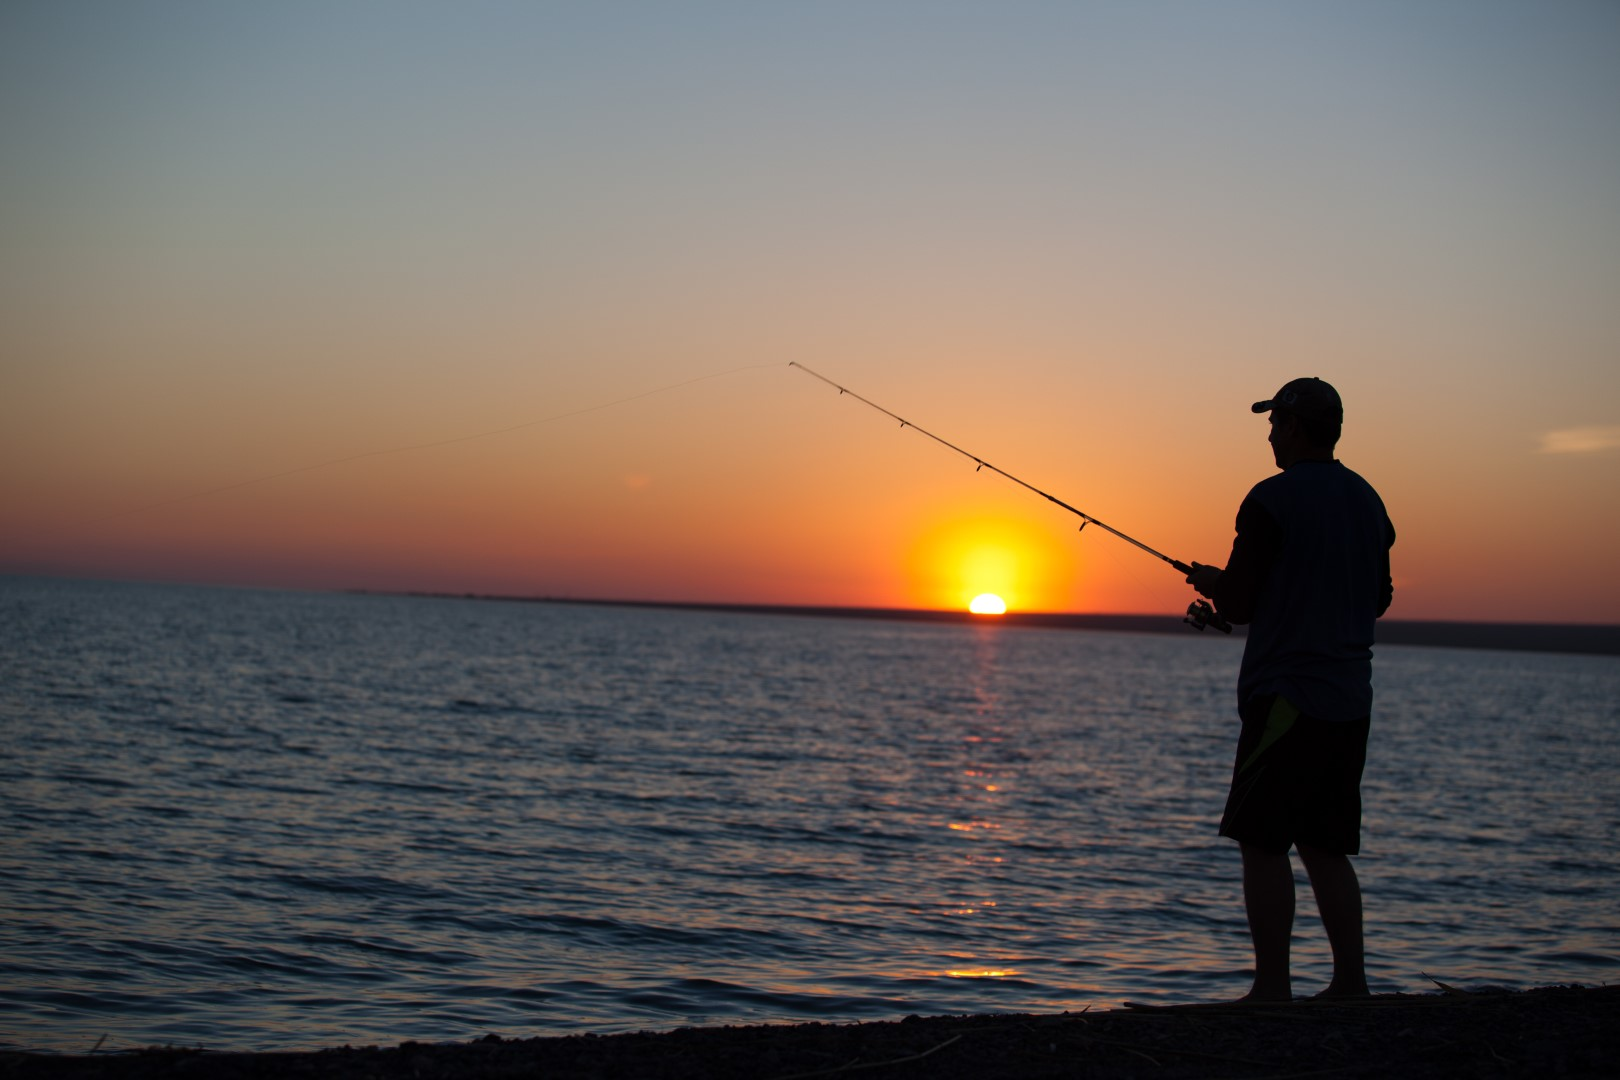 Fishermen robbed on glenashley beach northglen news for Fisher fish chicken indianapolis in